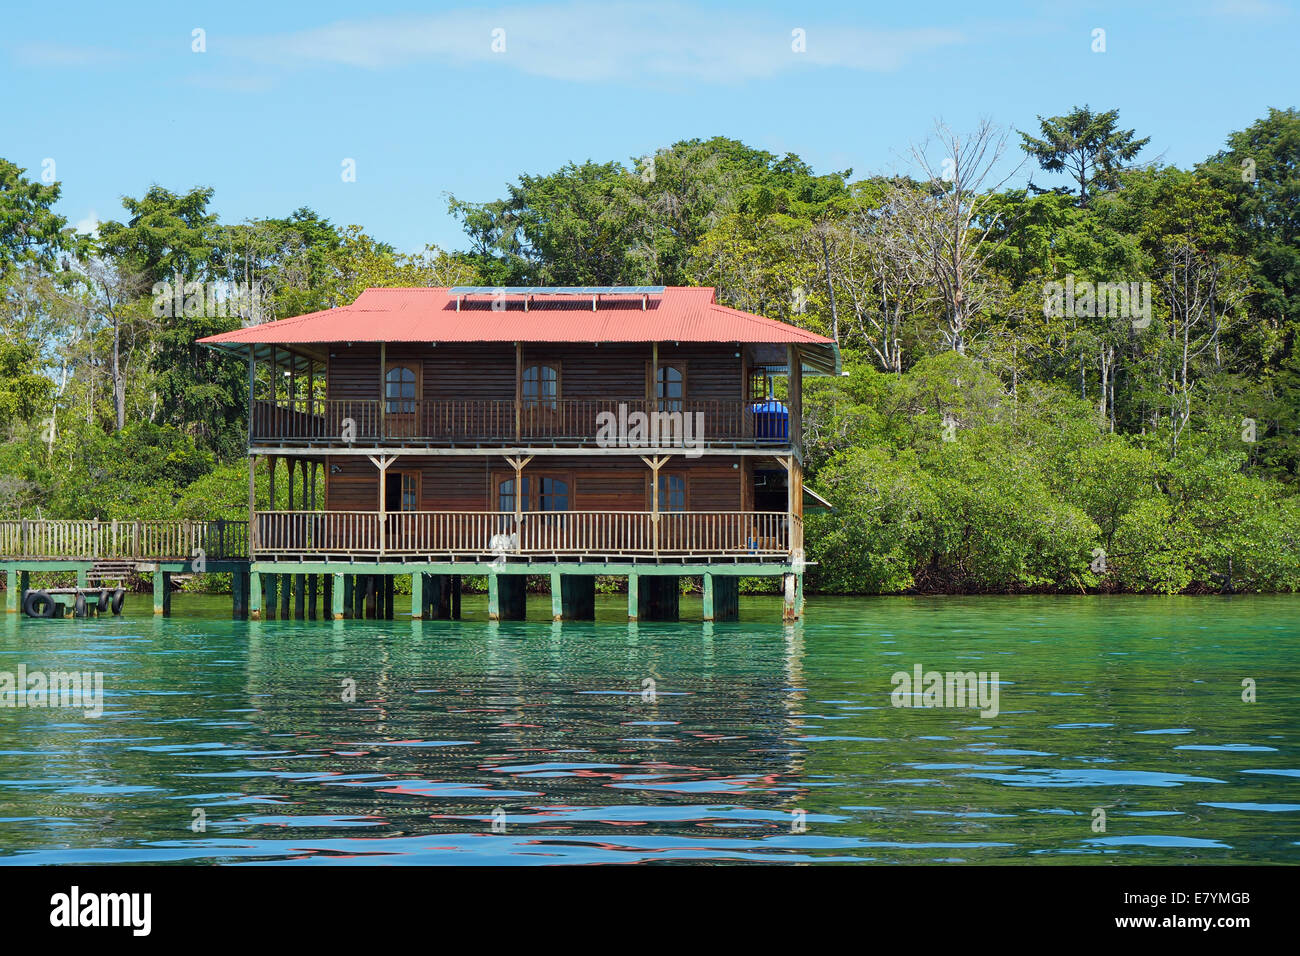 Off grid Caribbean house over water and solar powered, Panama, Central America - Stock Image